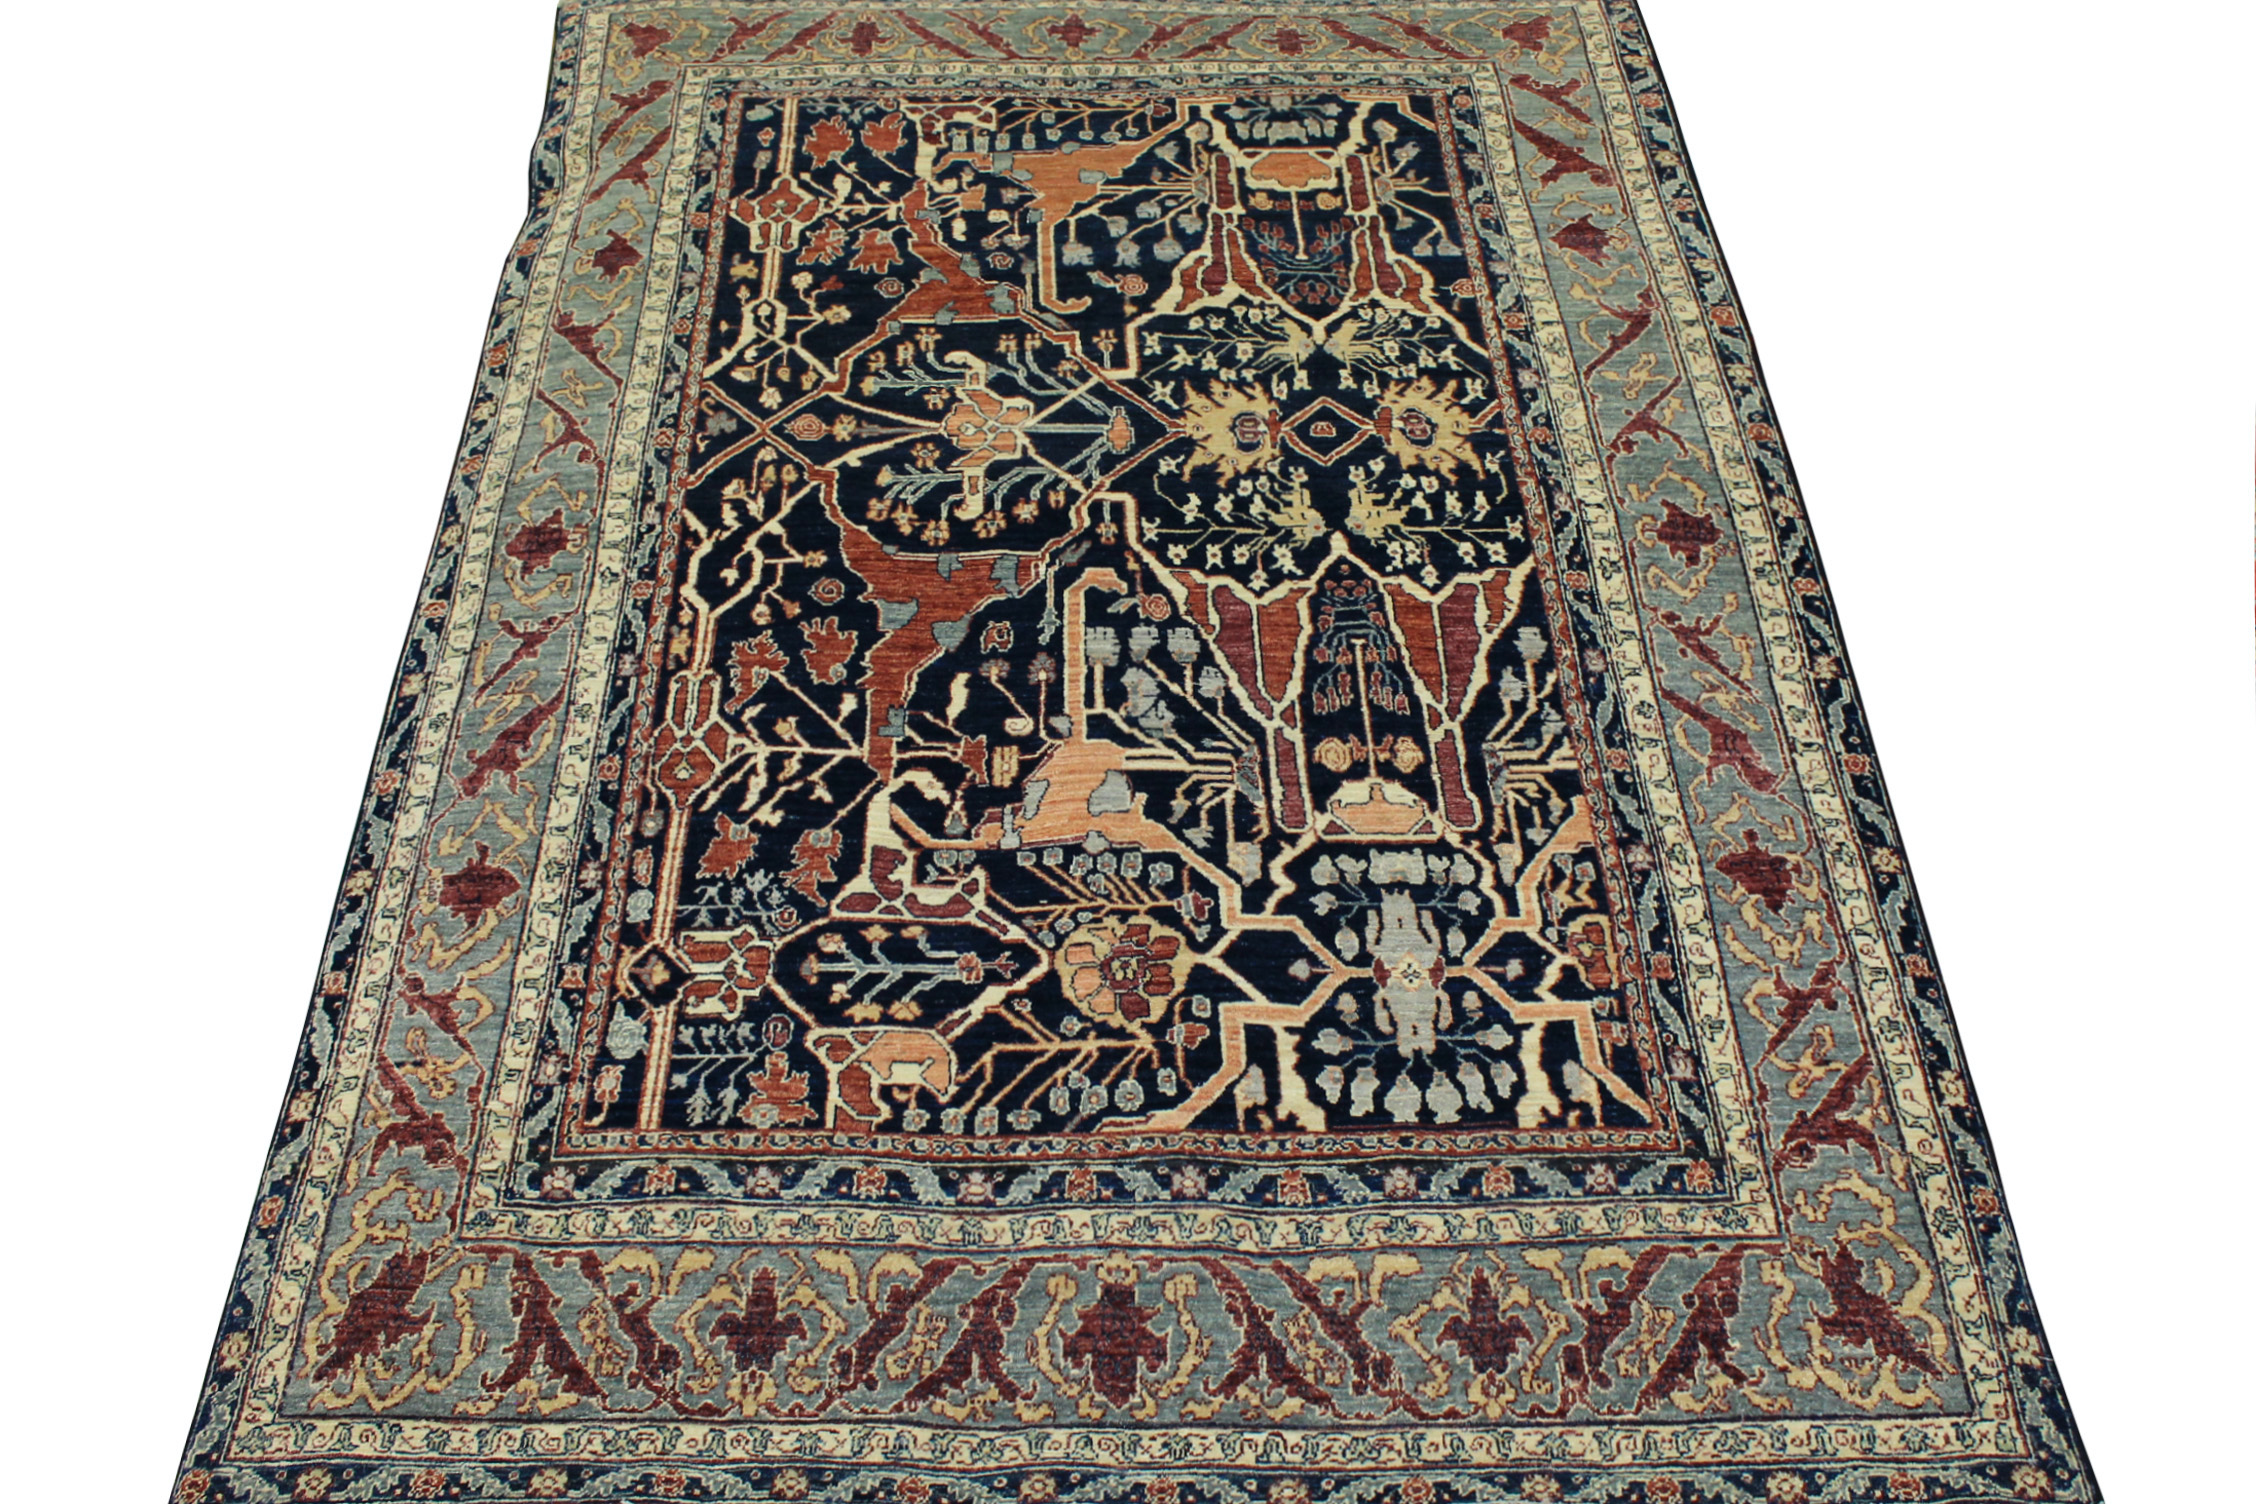 6x9 Antique Revival Hand Knotted Wool Area Rug - MR19982